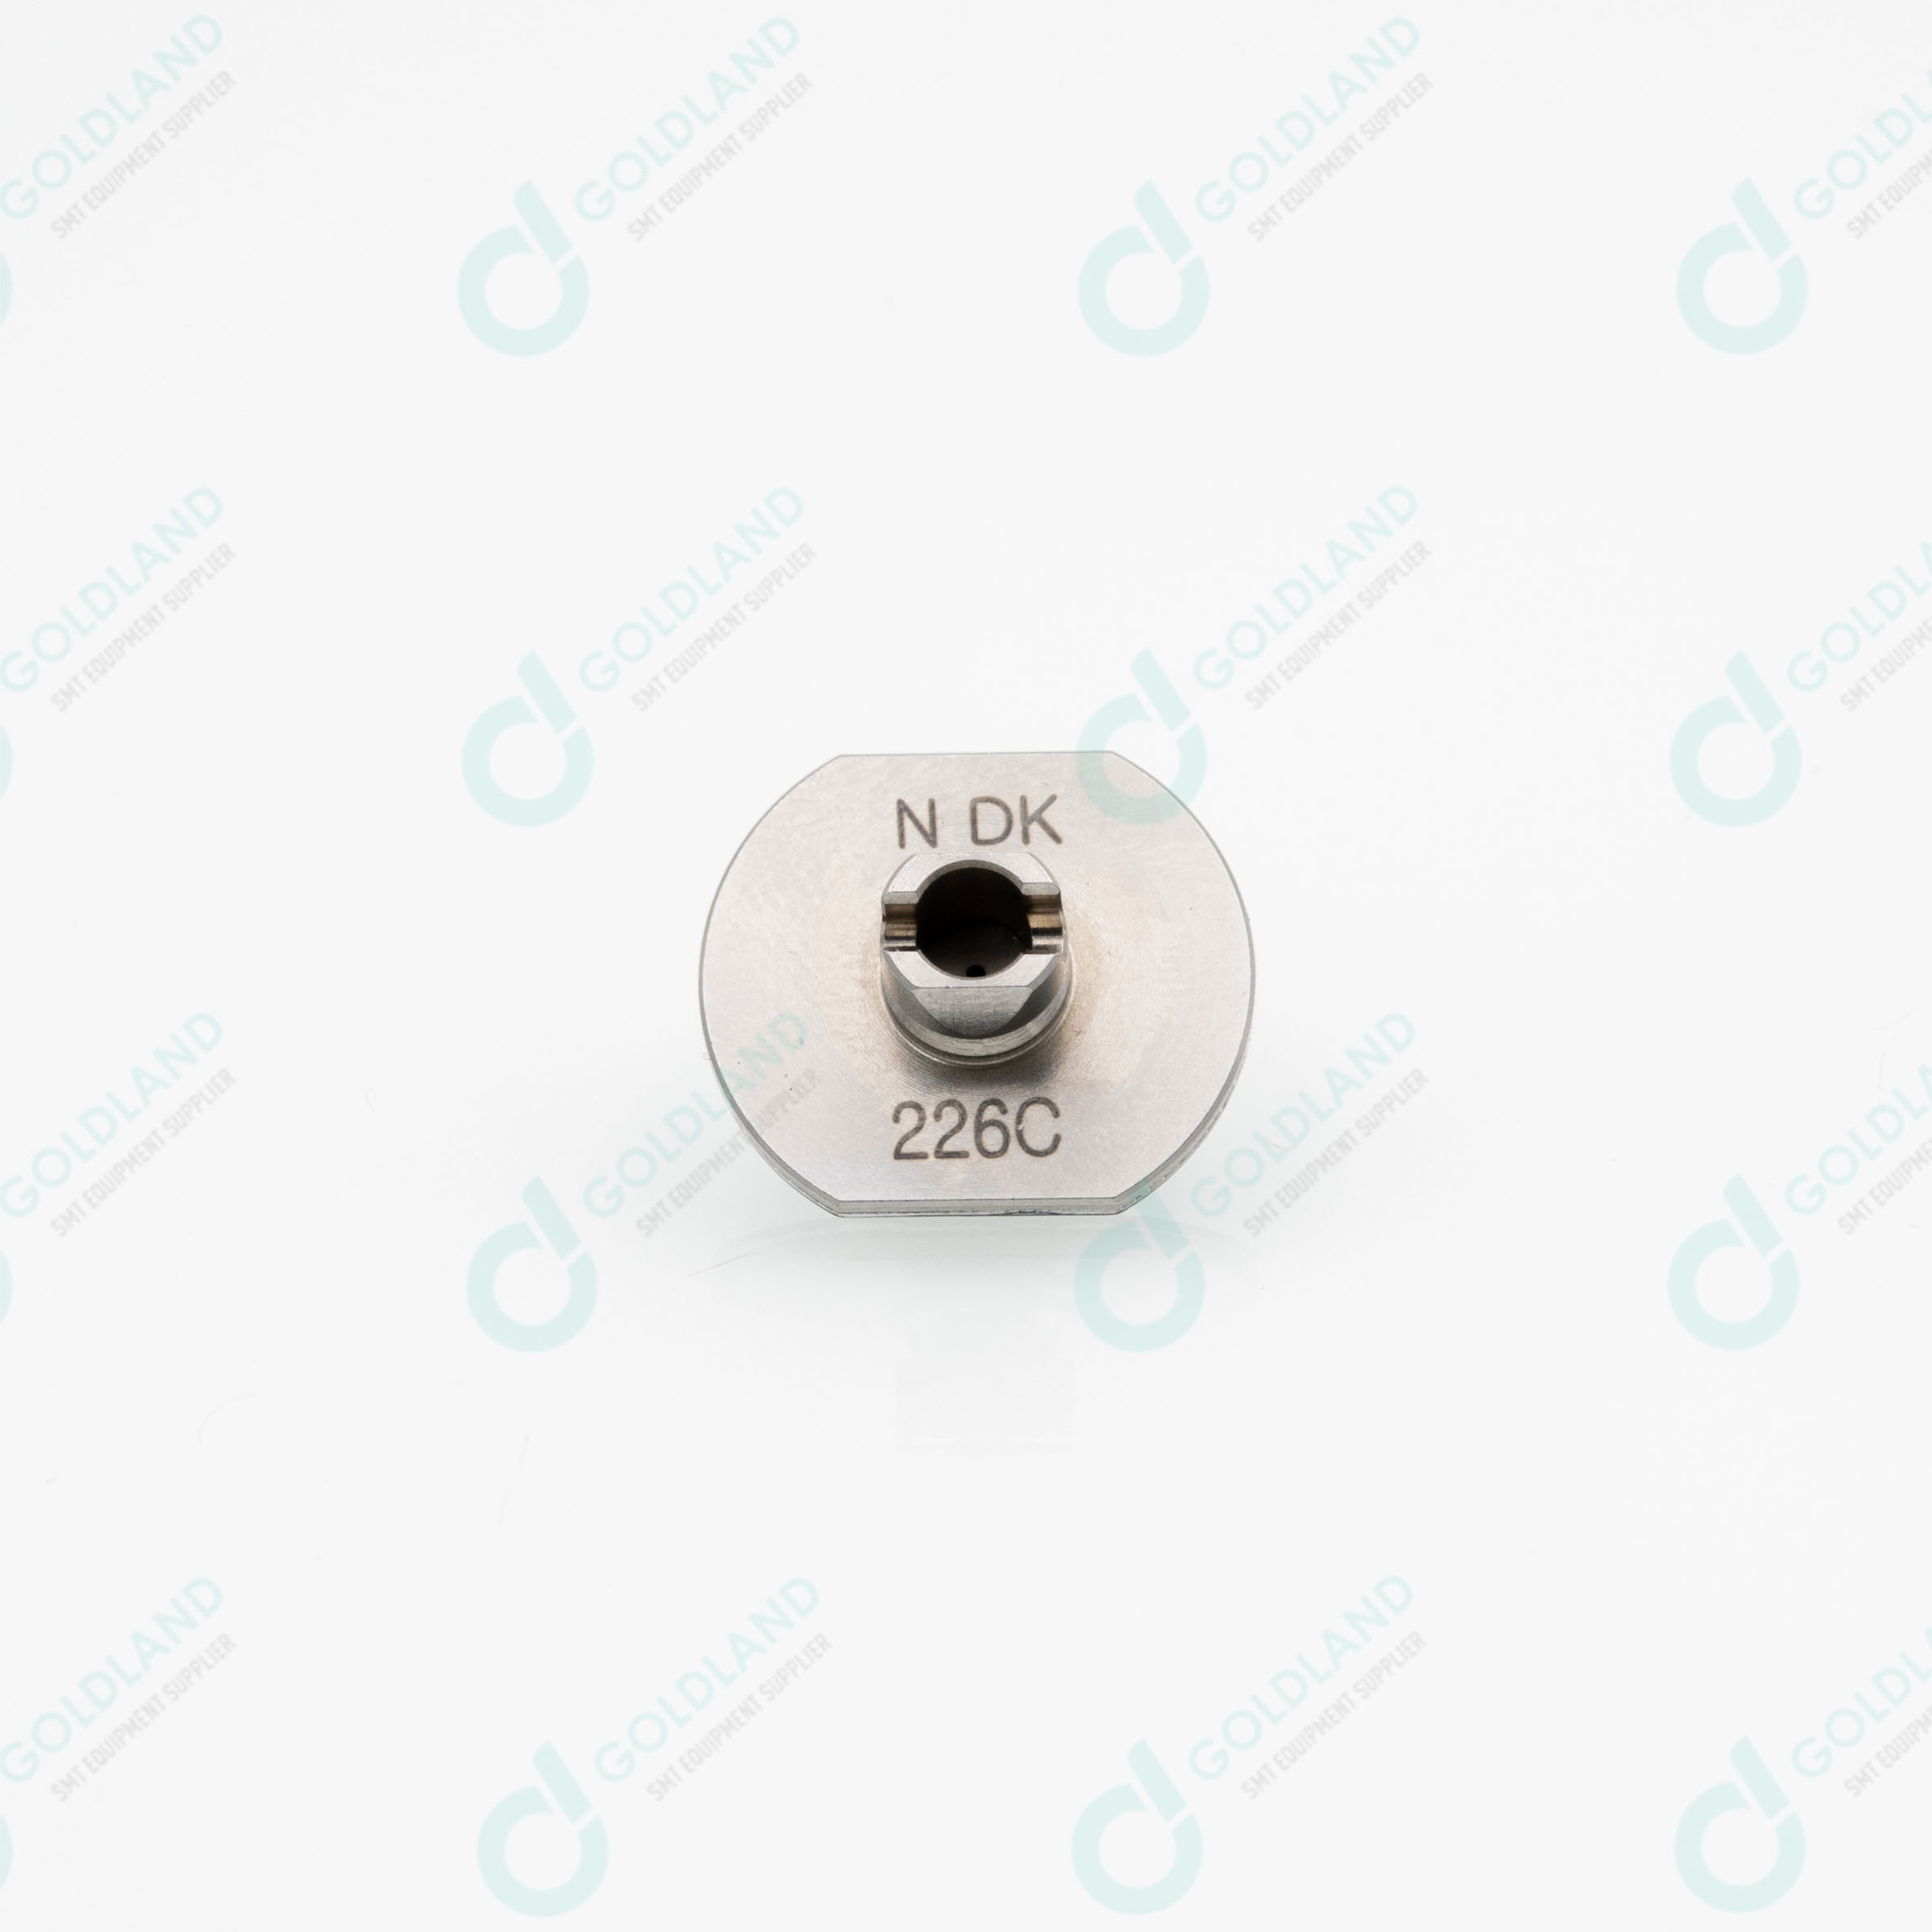 N610040783AA Panasonic 226C Nozzle for Panasonic smt machine parts